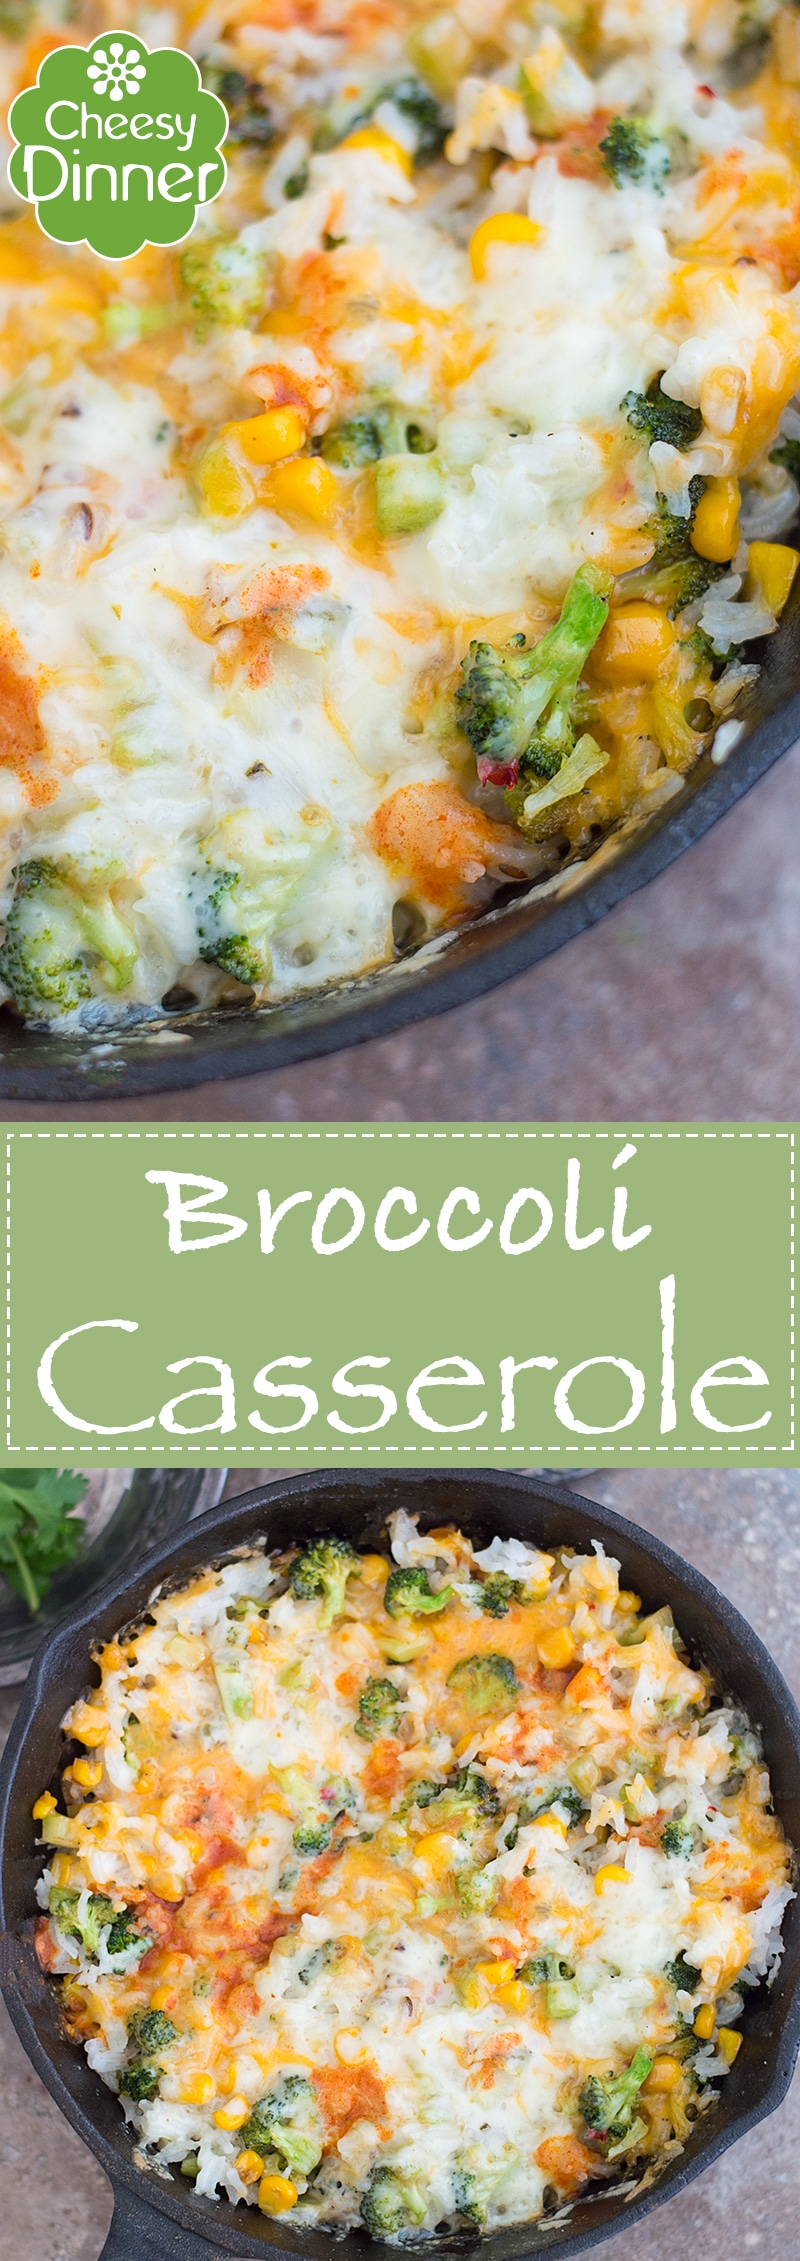 This Easy and Quick One Pot Meal Broccoli Rice Casserole is the Perfect Dinner Recipe for Those Busy Weeknights. It's One of My Favorite Comfort Foods | Family meals, weeknight dinners, quick dinners, one pot recipes